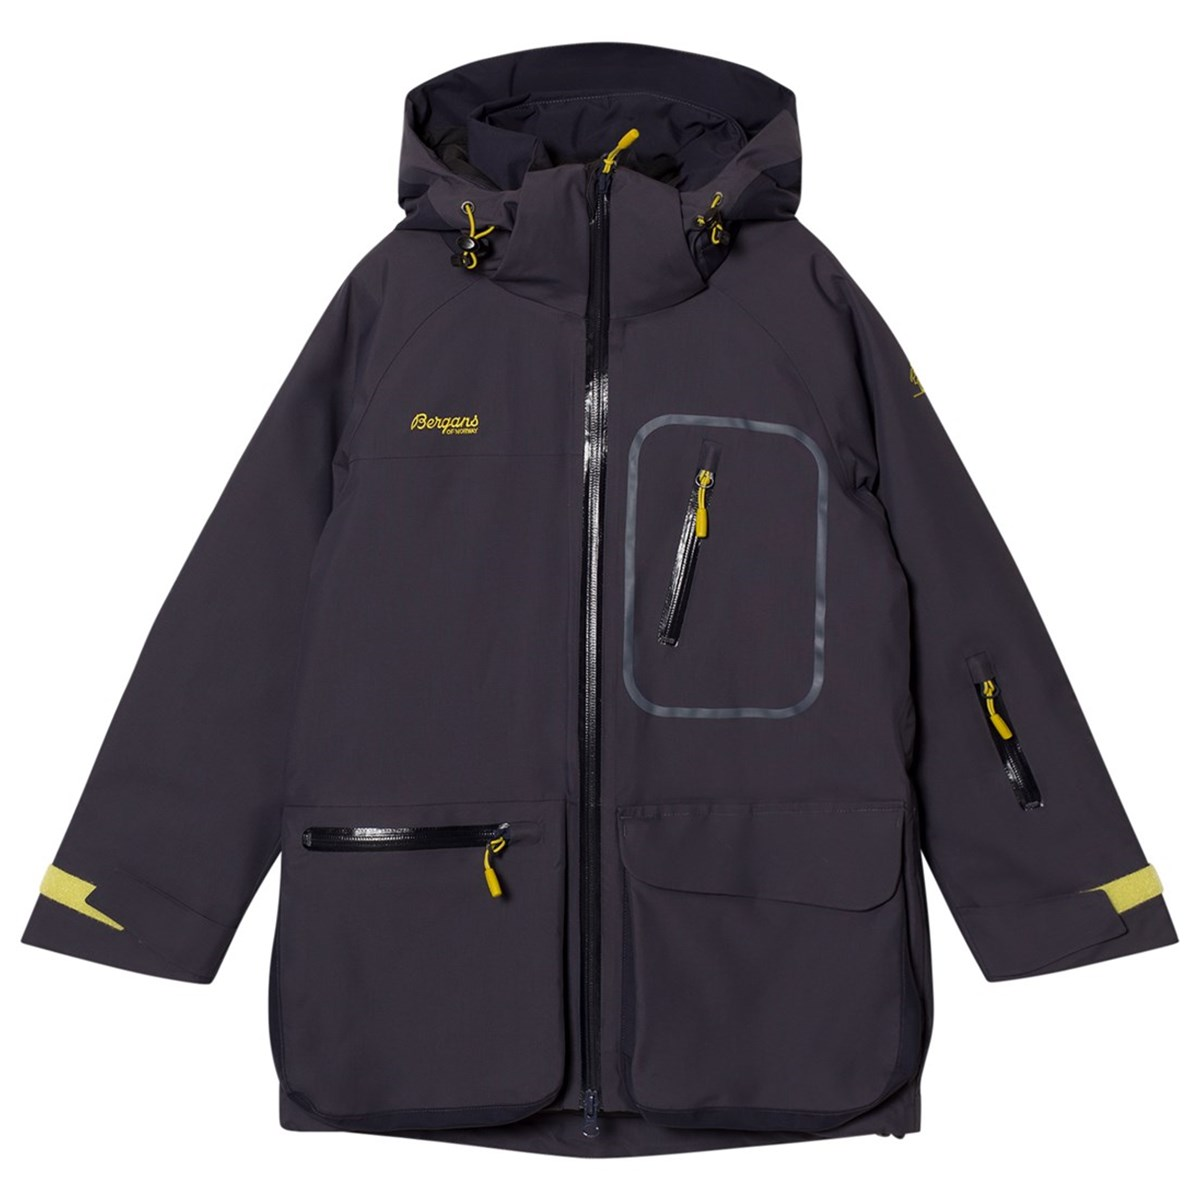 insulated kids jacket finns på PricePi.com. d49daf0cb